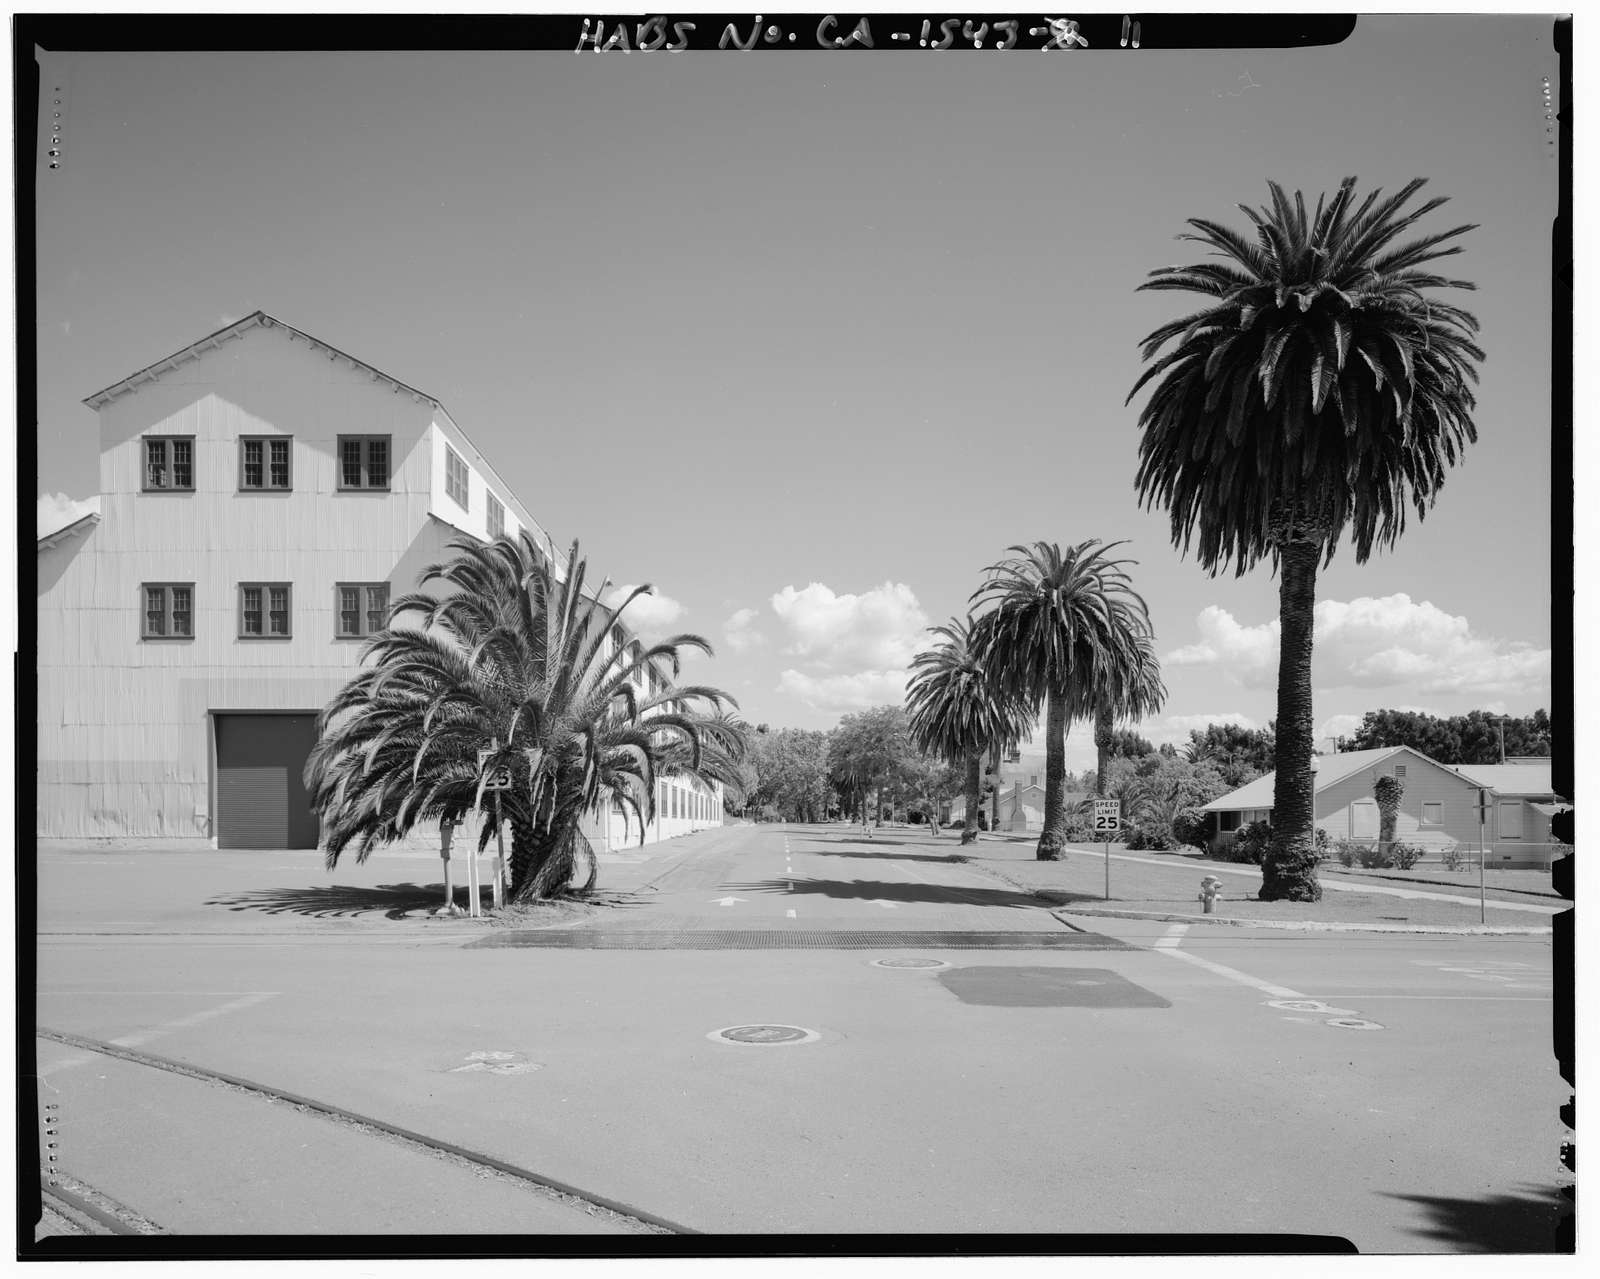 Mare Island Naval Shipyard, East of Nave Drive, Vallejo, Solano County, CA